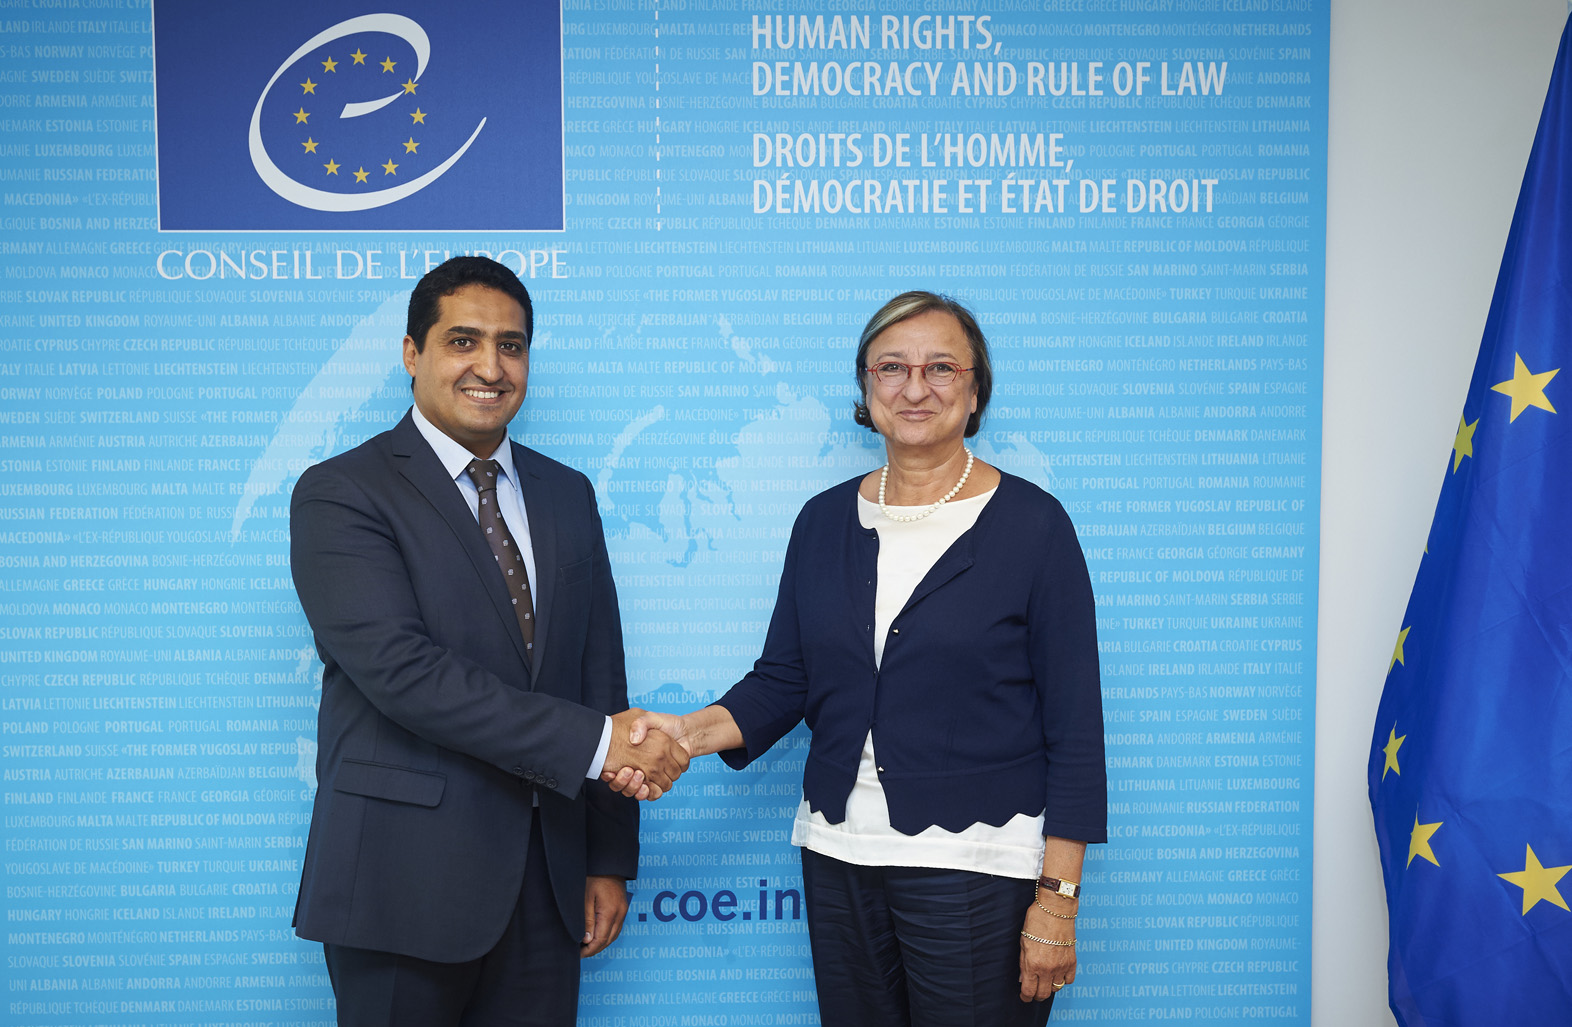 Gabriella Battaini Dragoni meets Secretary General of the Ministry of Communication of Morocco